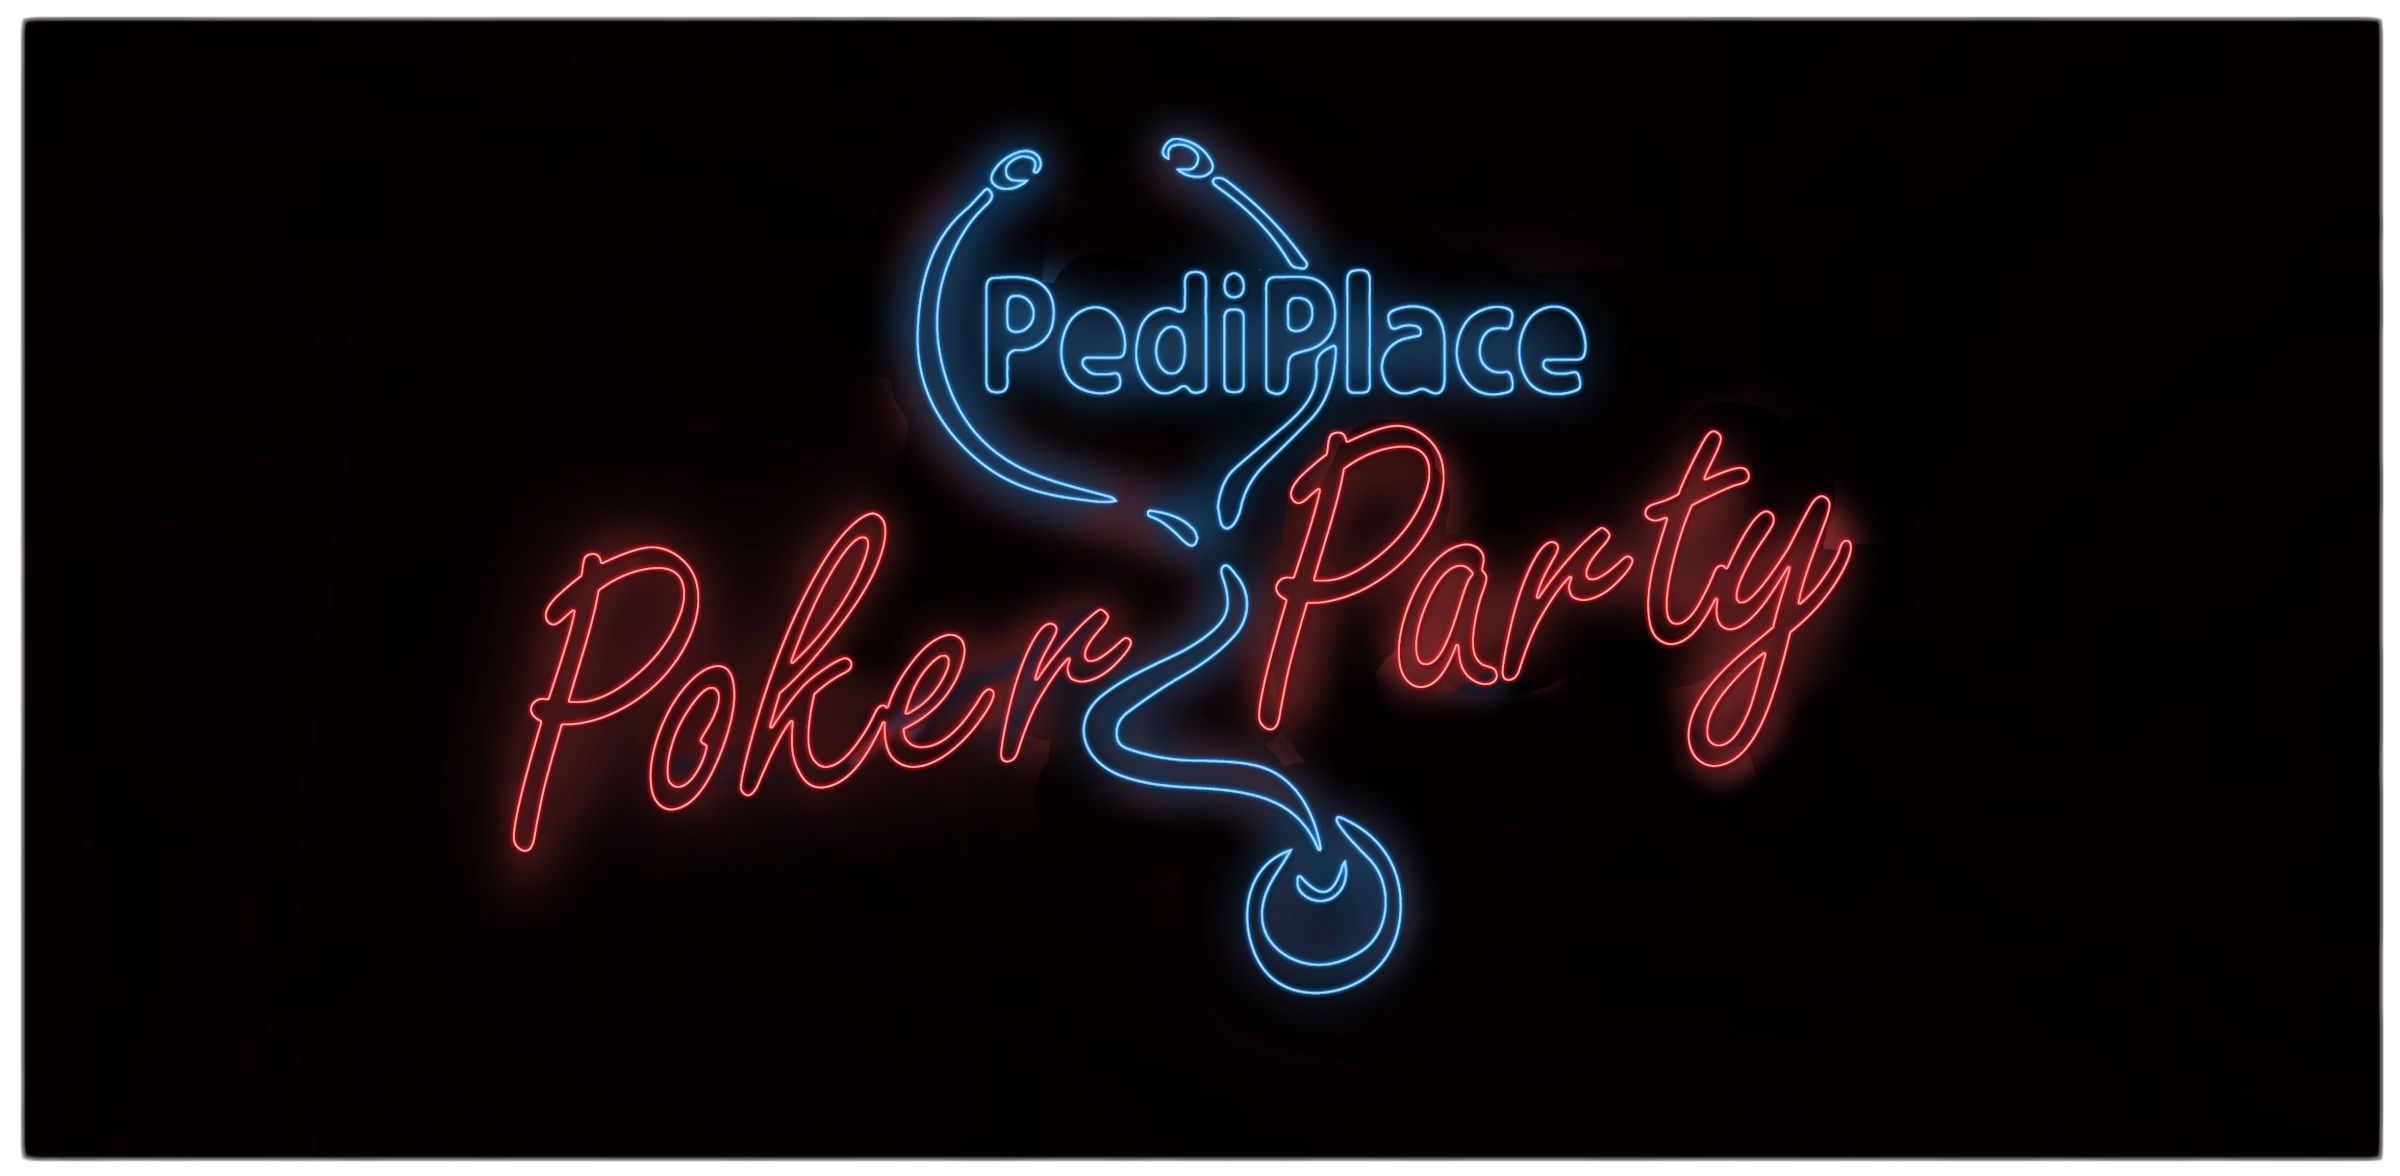 pediplace poker party neon rounded